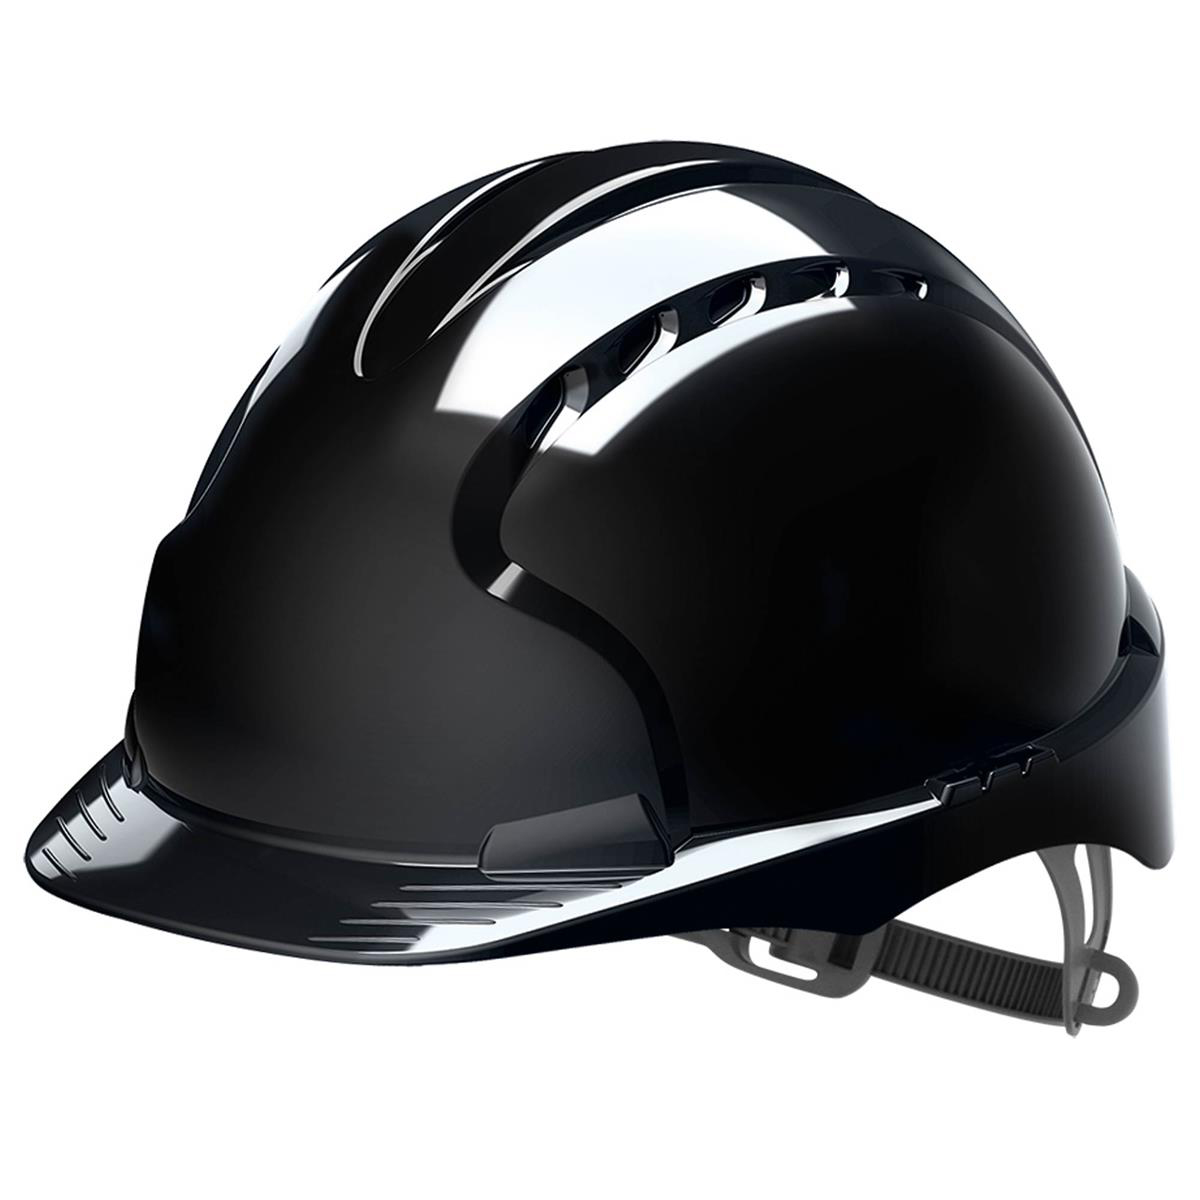 JSP EVO2 Safety Helmet HDPE 6-point Polyethylene Harness EN397 Standard Black Ref AJF030-001-1G1